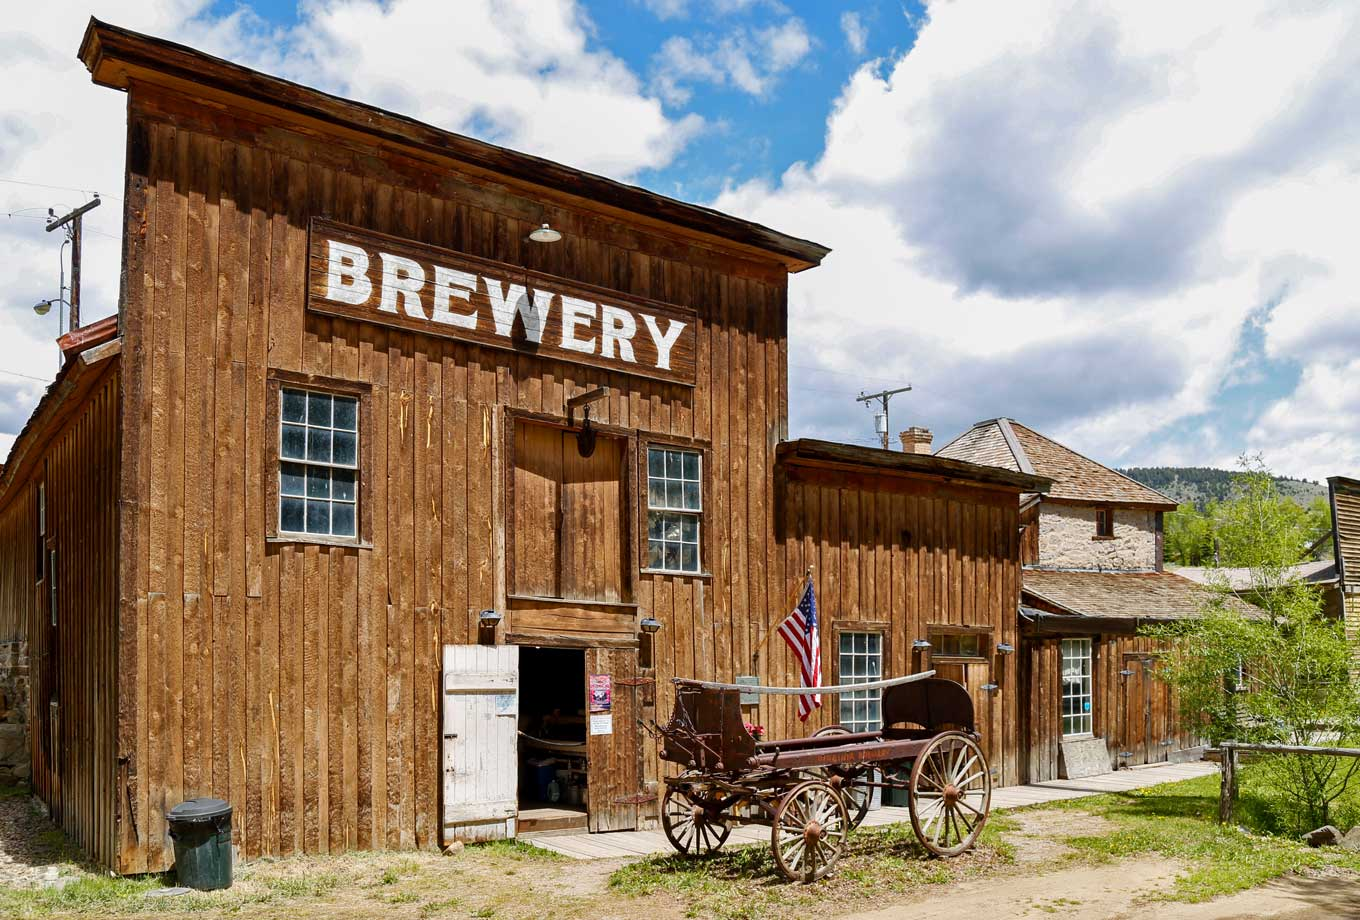 Brewery Follies in Virginia City